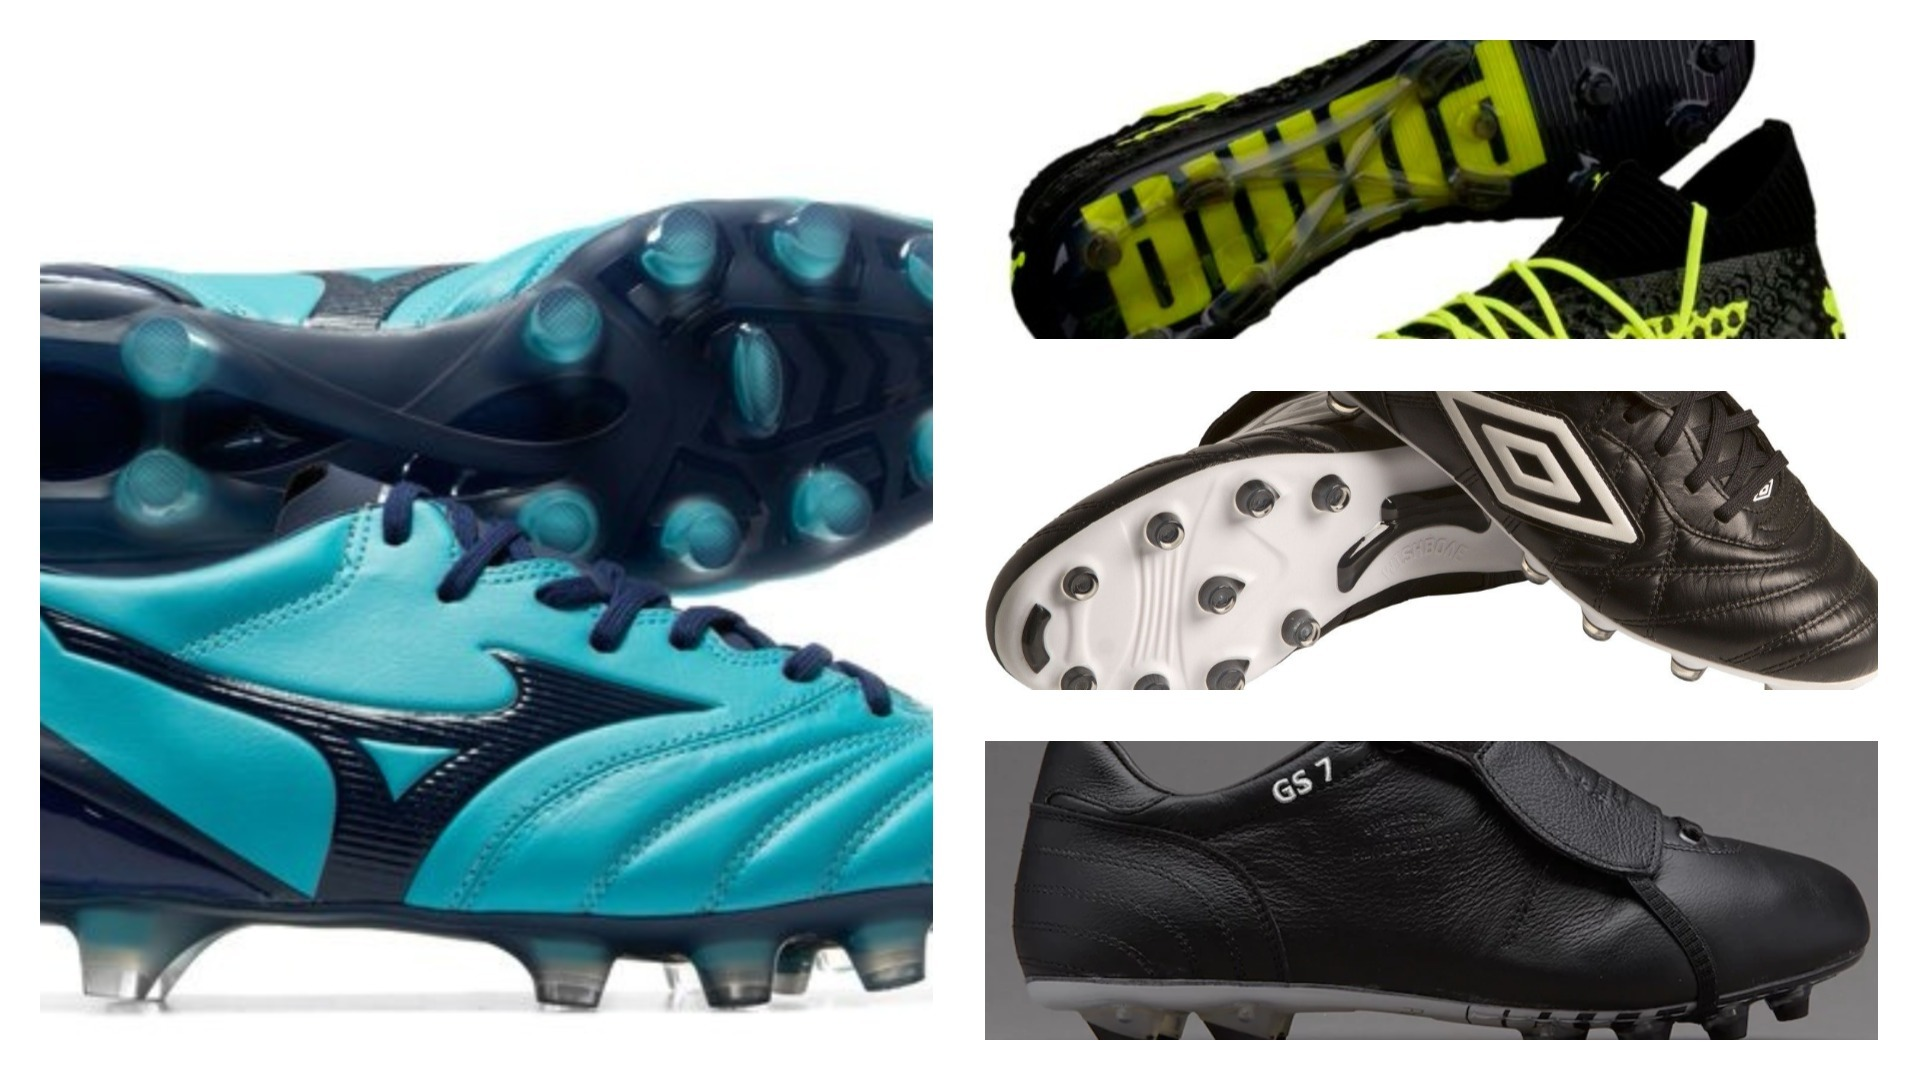 Soccer Shoes, Cleats For Soccer, Turf Soccer Cleats Best Soccer Shoes 2018